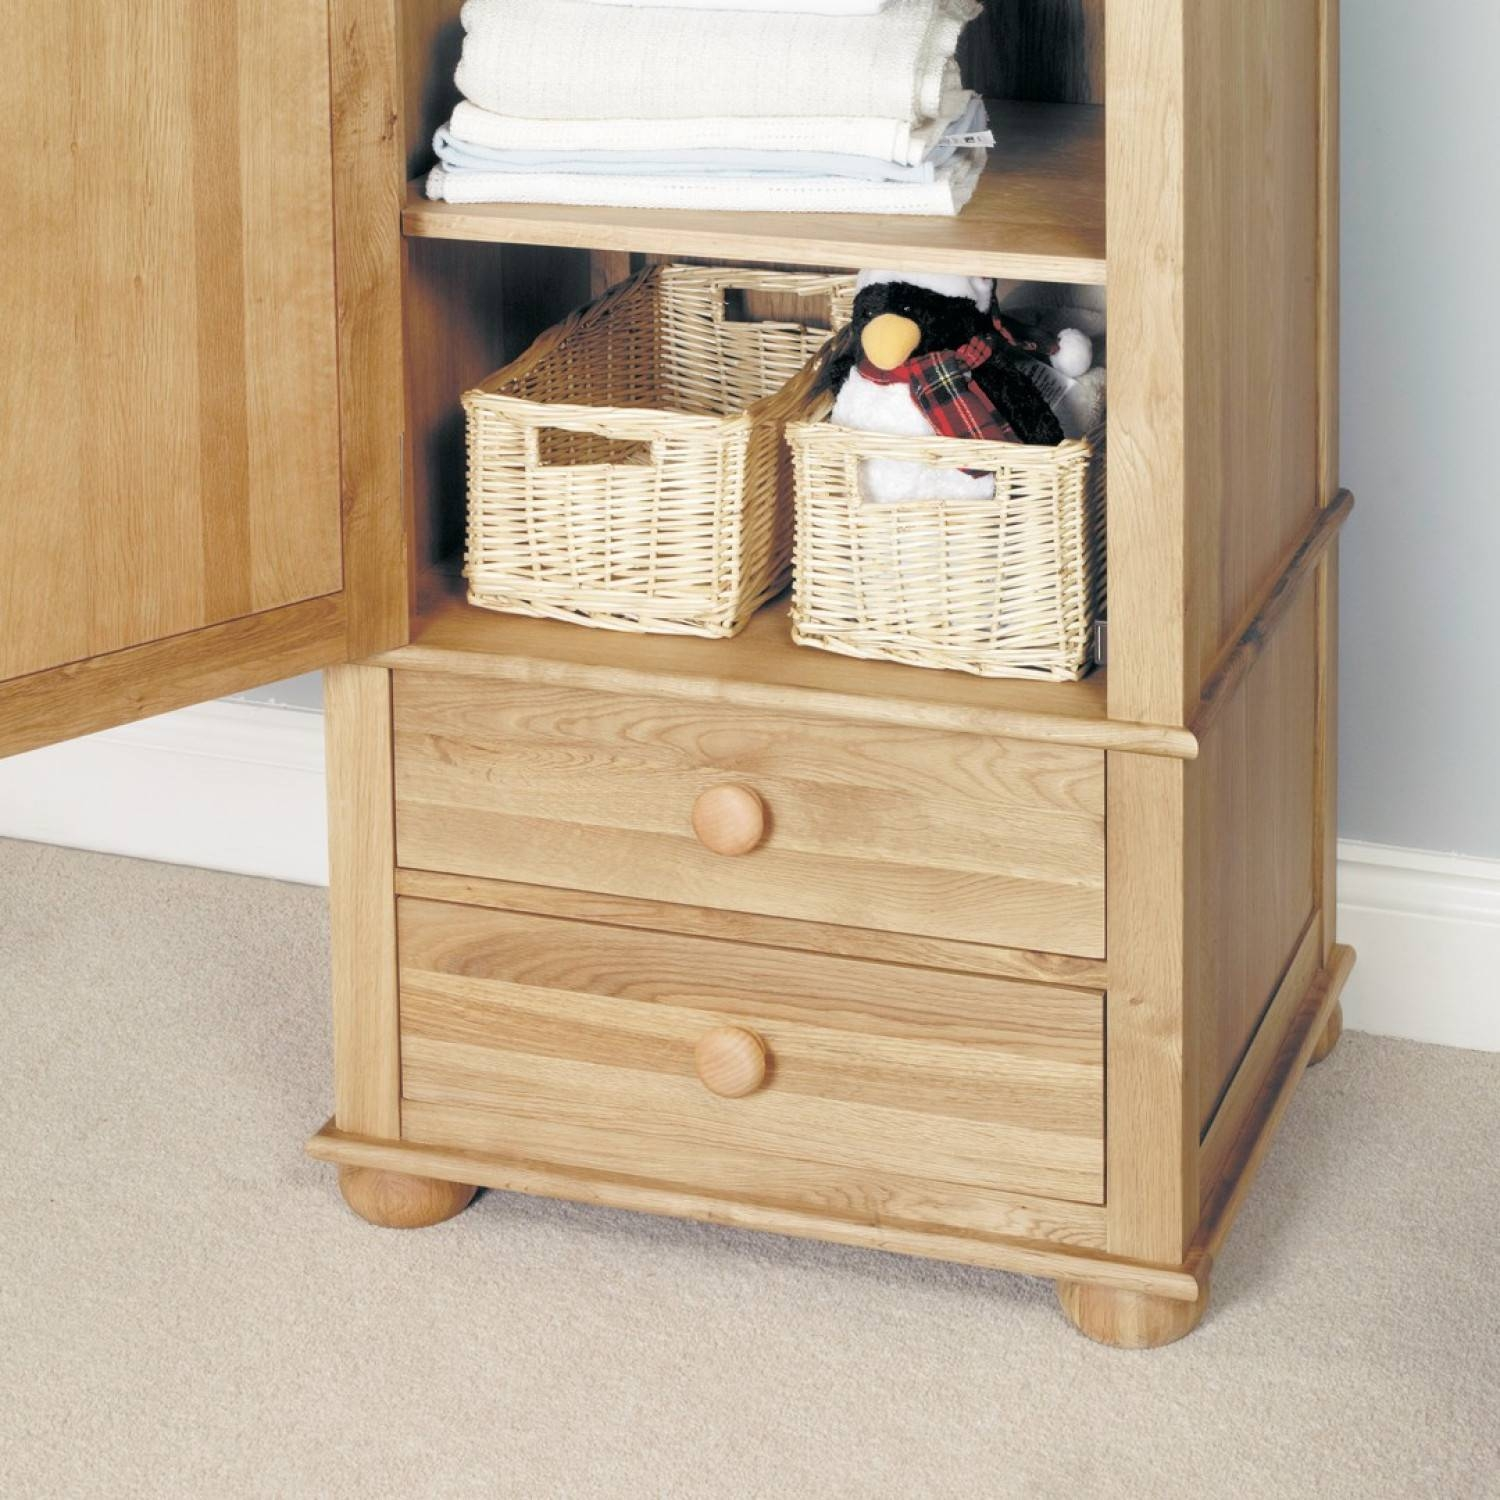 Emily Solid Oak Childrens Single Wardrobe with regard to Single Wardrobe With Drawers And Shelves (Image 14 of 30)